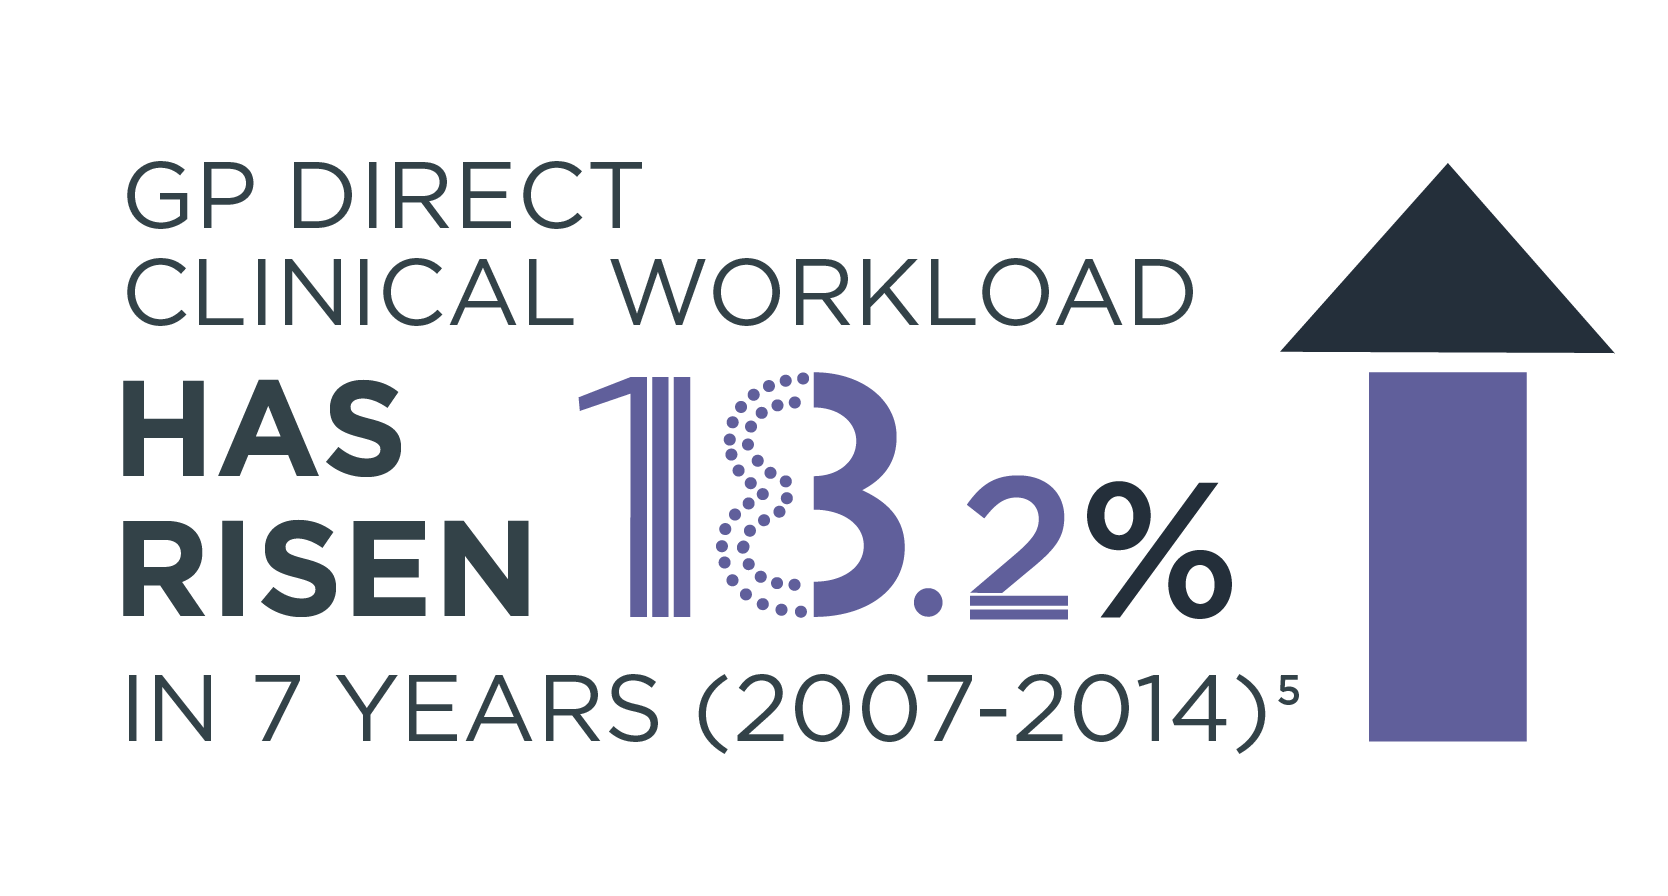 GP direct clinical workload has risen 18.2% in 7 years (2007-2014)